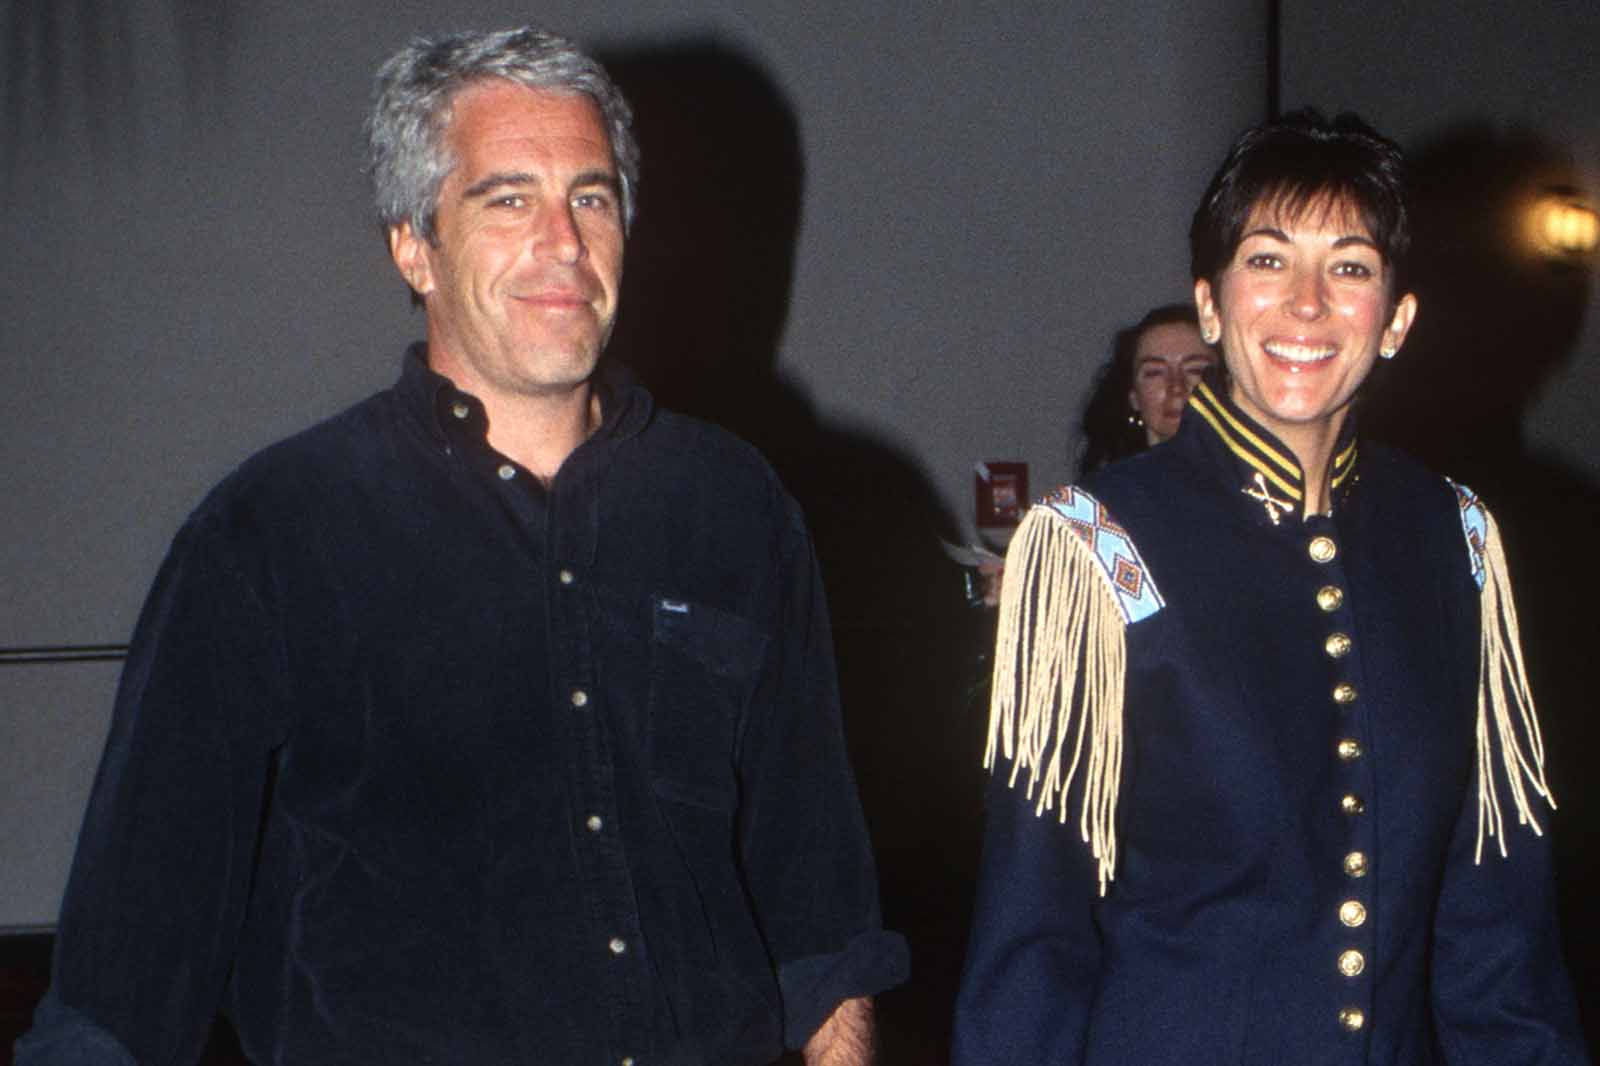 A new lawsuit in the news agaisnt Ghislaine Maxwell is cluing the public into Jeffrey Epstein's constant need for sex. How did this affect Epstein?